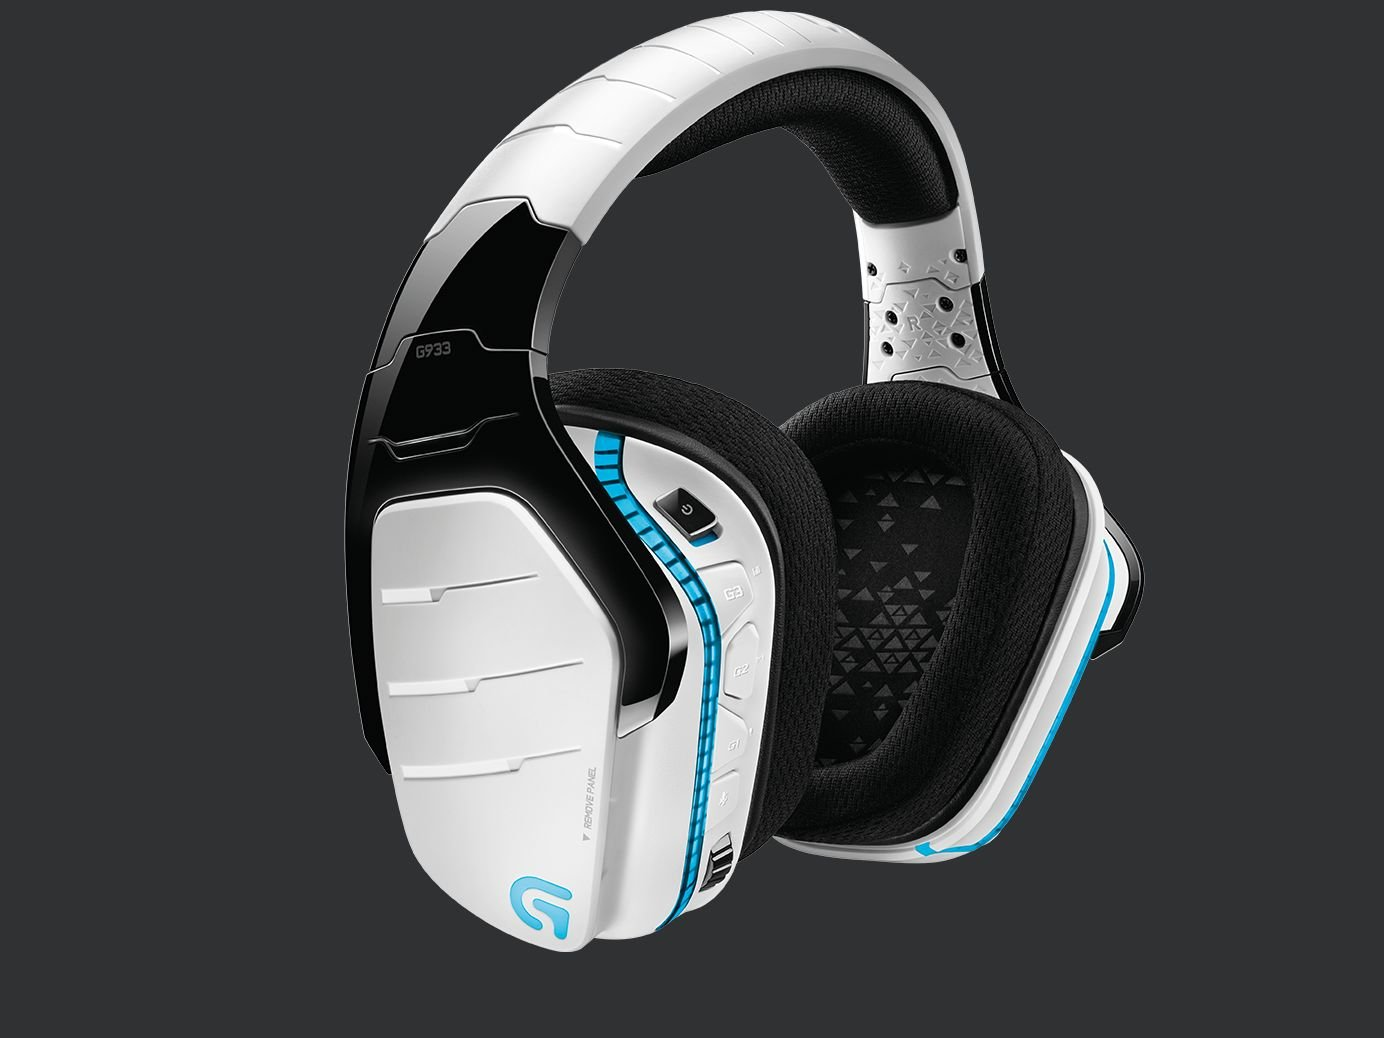 c516044d933 Details about NEW LOGITECH G933 ARETEMIS SPECTRUM SNOW White Wireless 7.1  PRO Gaming Headset